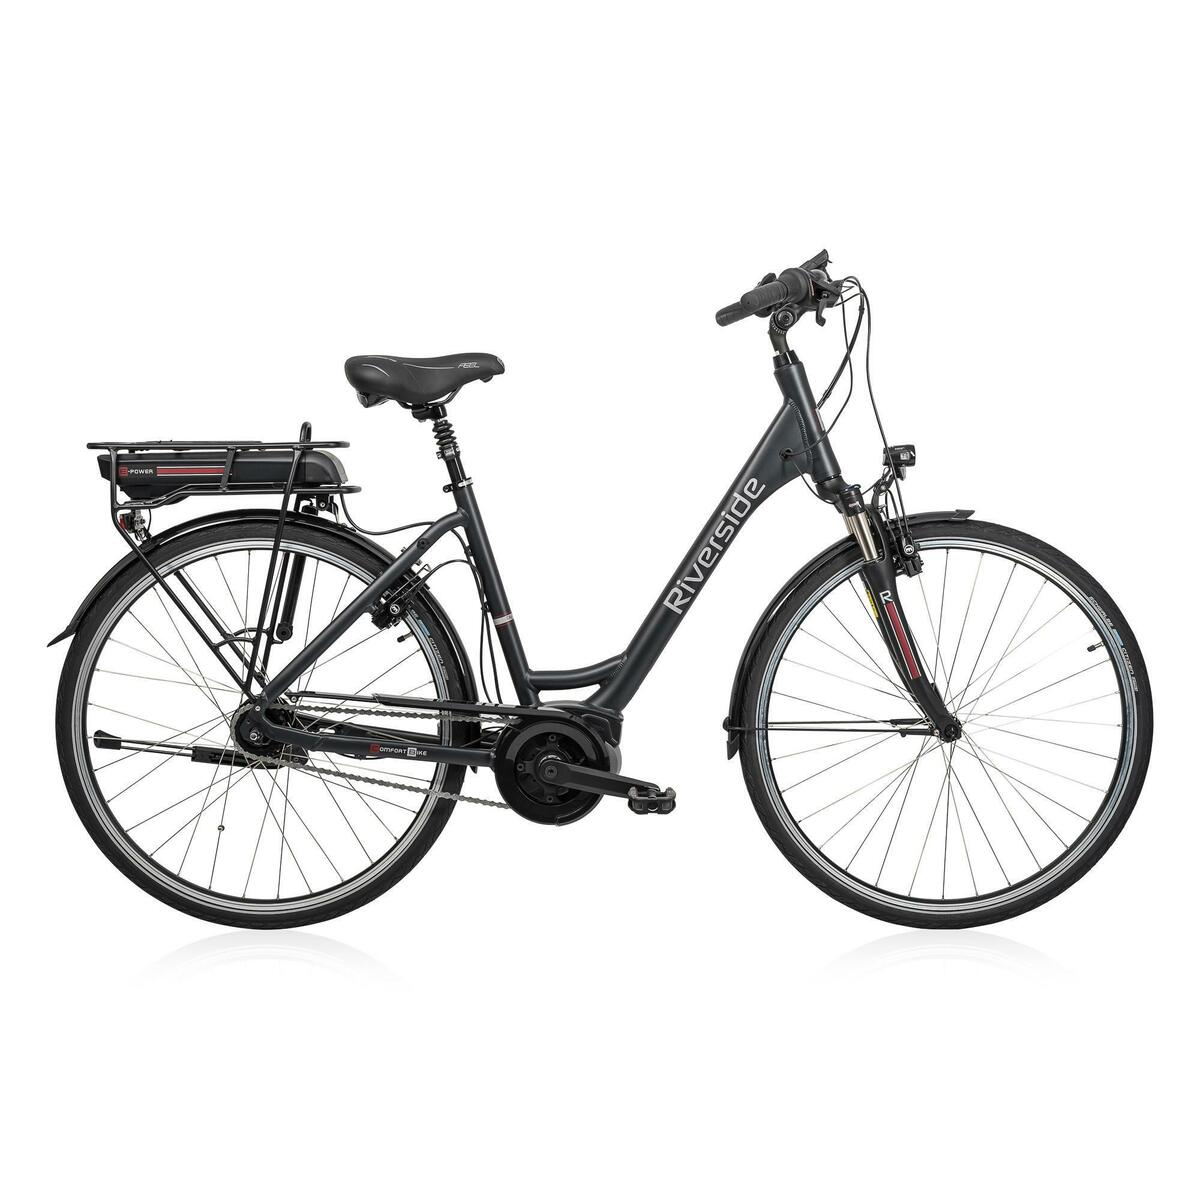 Bild 1 von E-Bike 28 Riverside City Nexus 8 Active Plus 400 Wh Freilauf